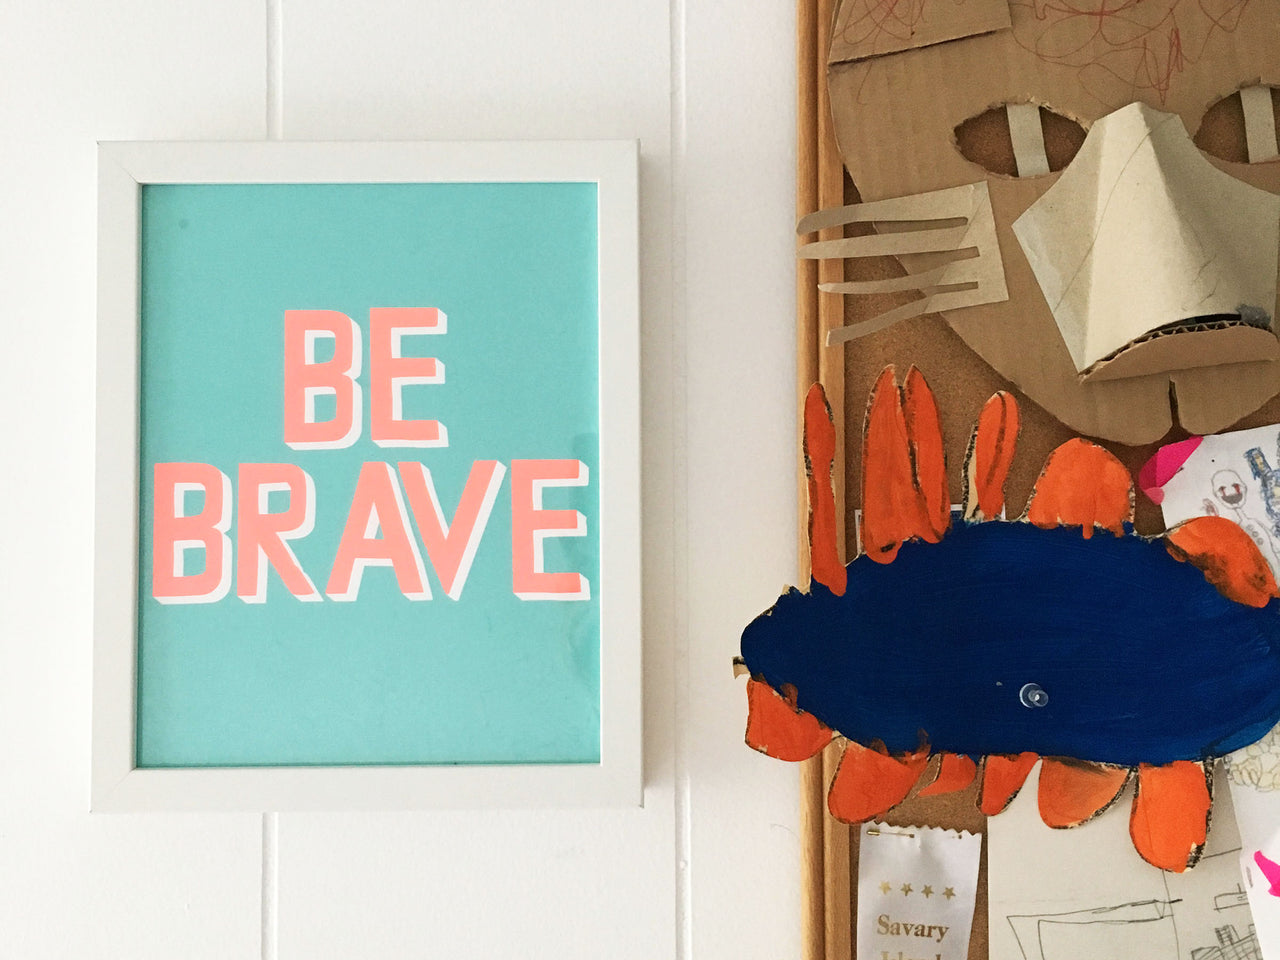 Aqua a Neon Orange BE BRAVE small framed Affirmation print.